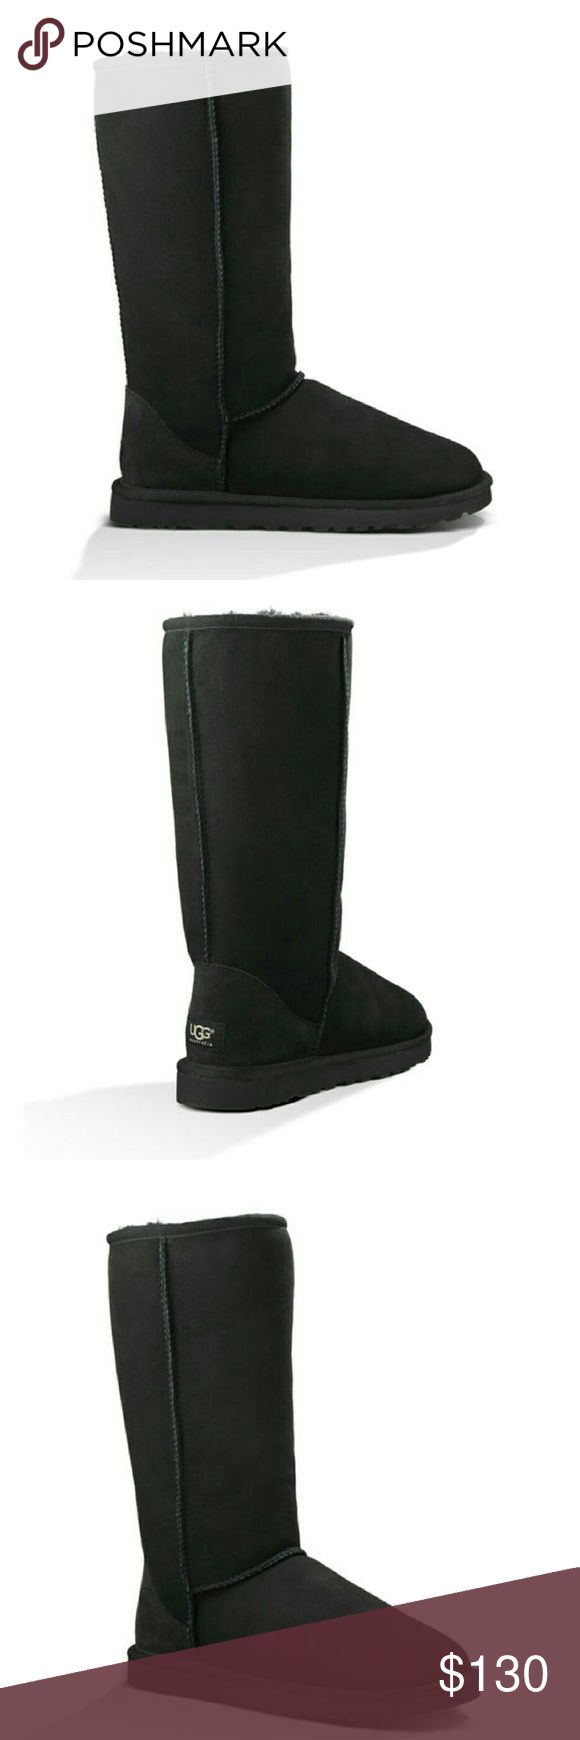 Never worn. Ugg Australia classic tall size 7 blk Brand new! 100% sheepskin, bought at the Ugg store in chicago. Retail price is $195, asking $100! I've never worn these, they are in the original box. :) UGG Shoes Winter & Rain Boots